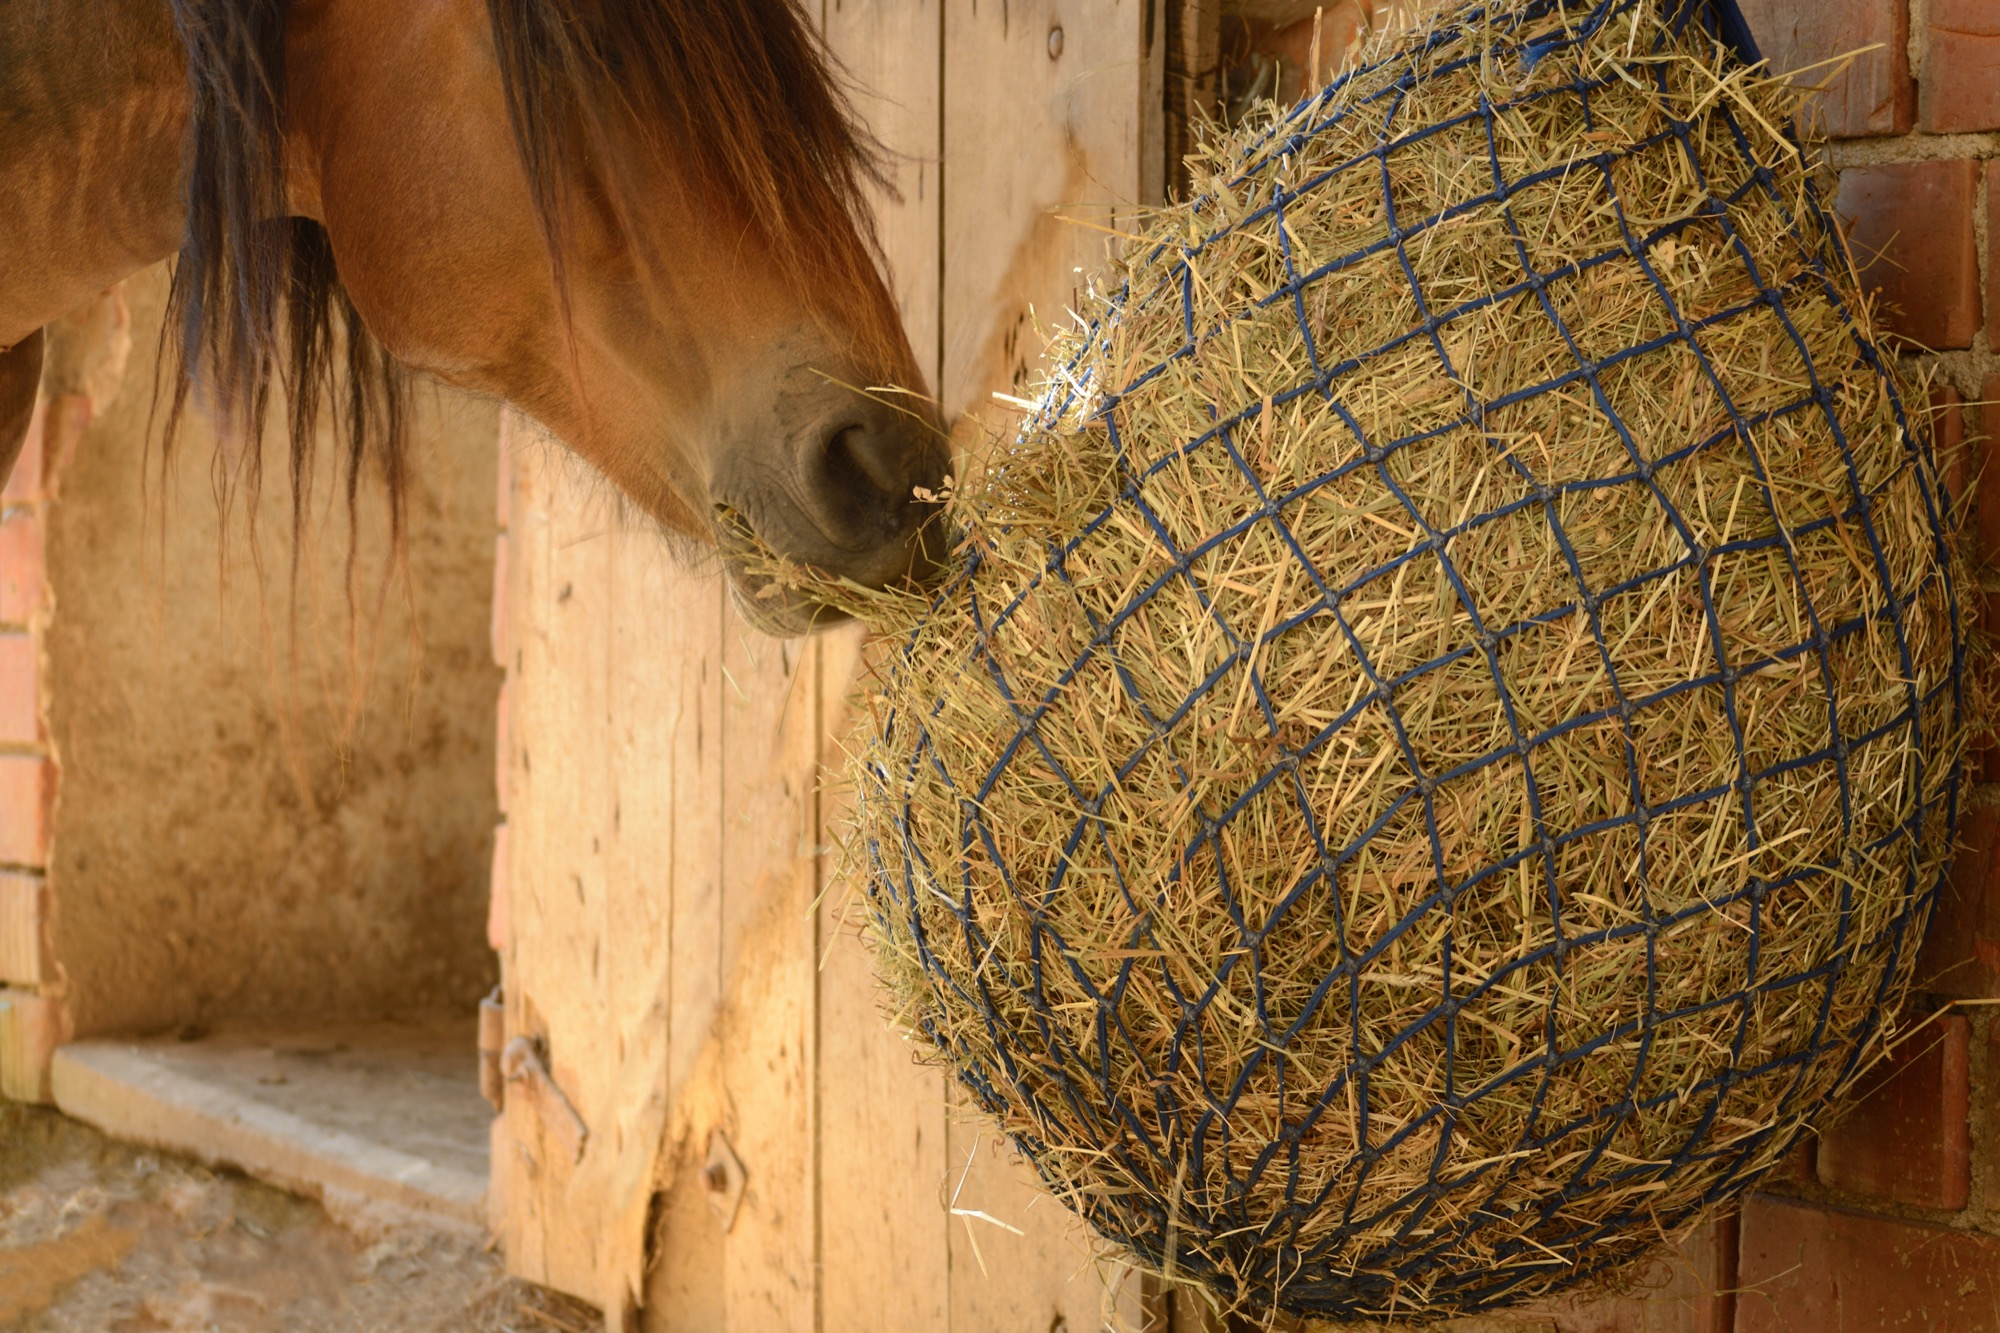 A horse protecting its teeth eating from a slow feed hay net